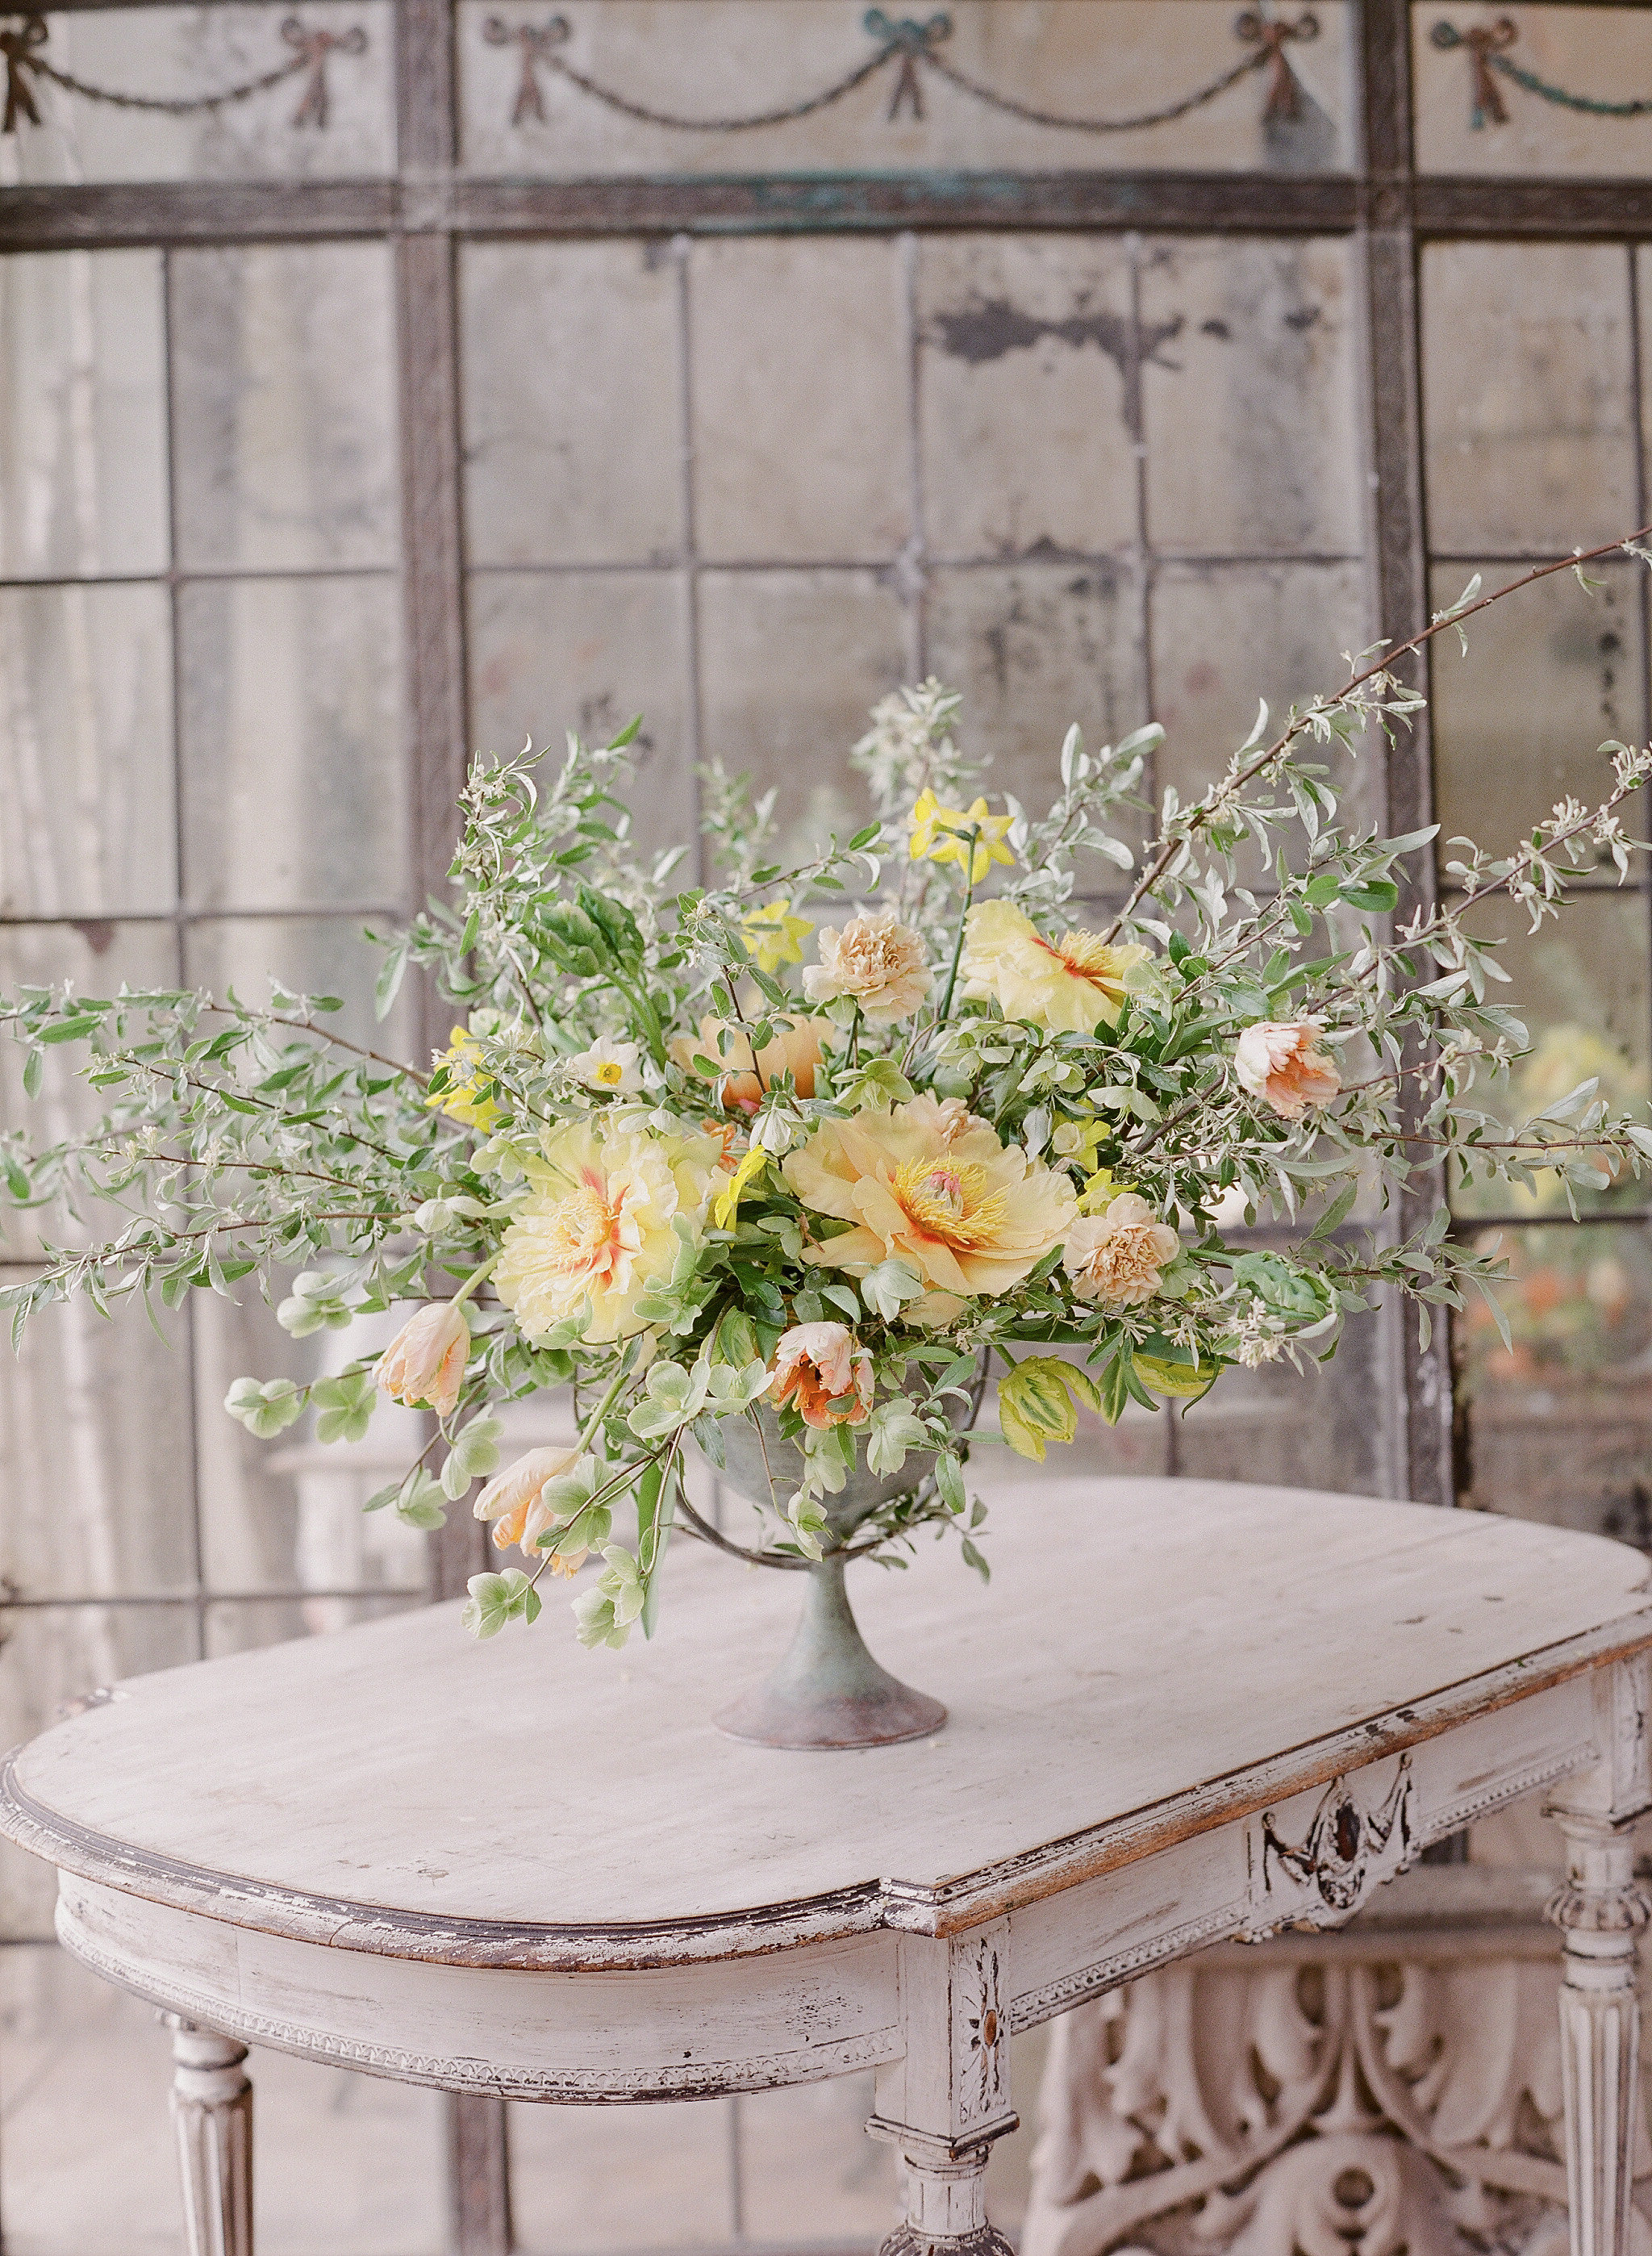 Subscriptions - Spruce up your space with a beautiful arrangement delivered to your home or business on a weekly or biweekly basis. With each new delivery, we will collect the vase from the week before.